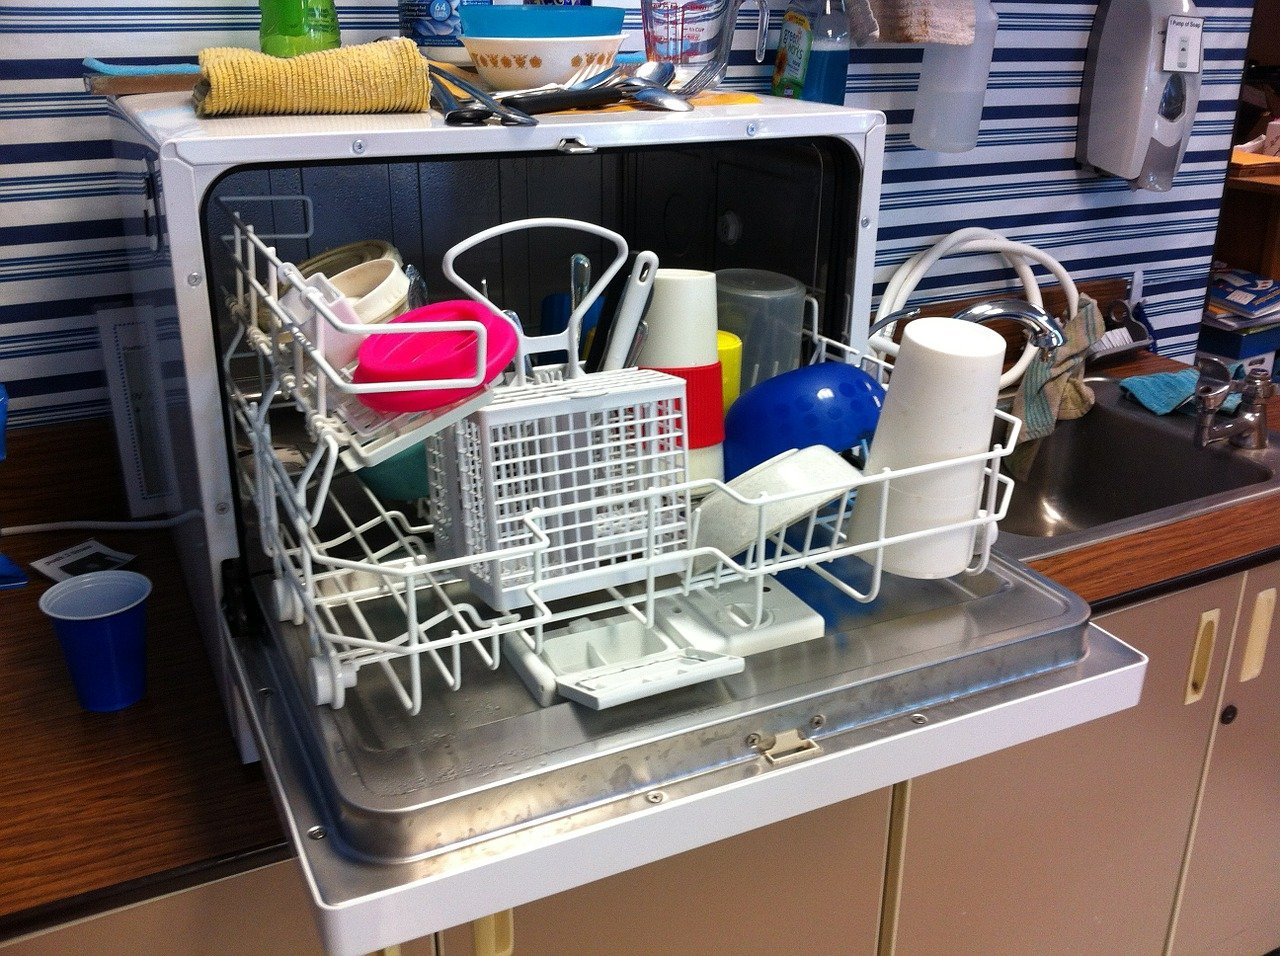 How To Maintain Your Dishwasher